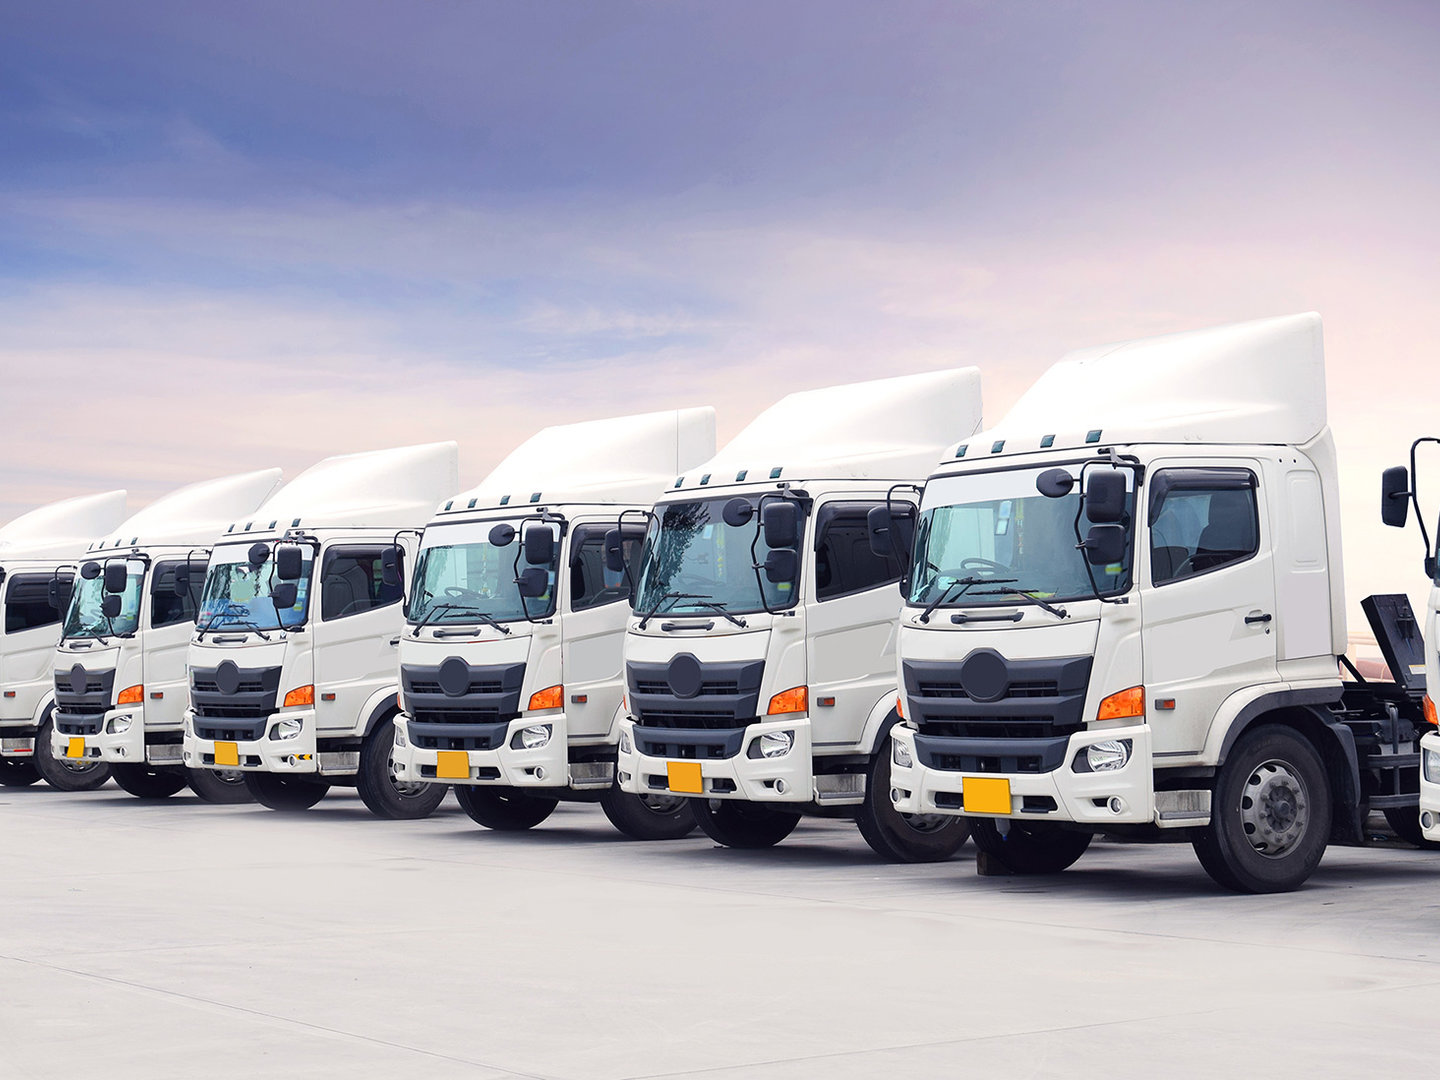 Motor Fleet Insurance applies where you own multiple vehicles. Peter Vickers Insurance Brokers can help with finding the most suitable insurance for your needs and assist with claims as part of the service.